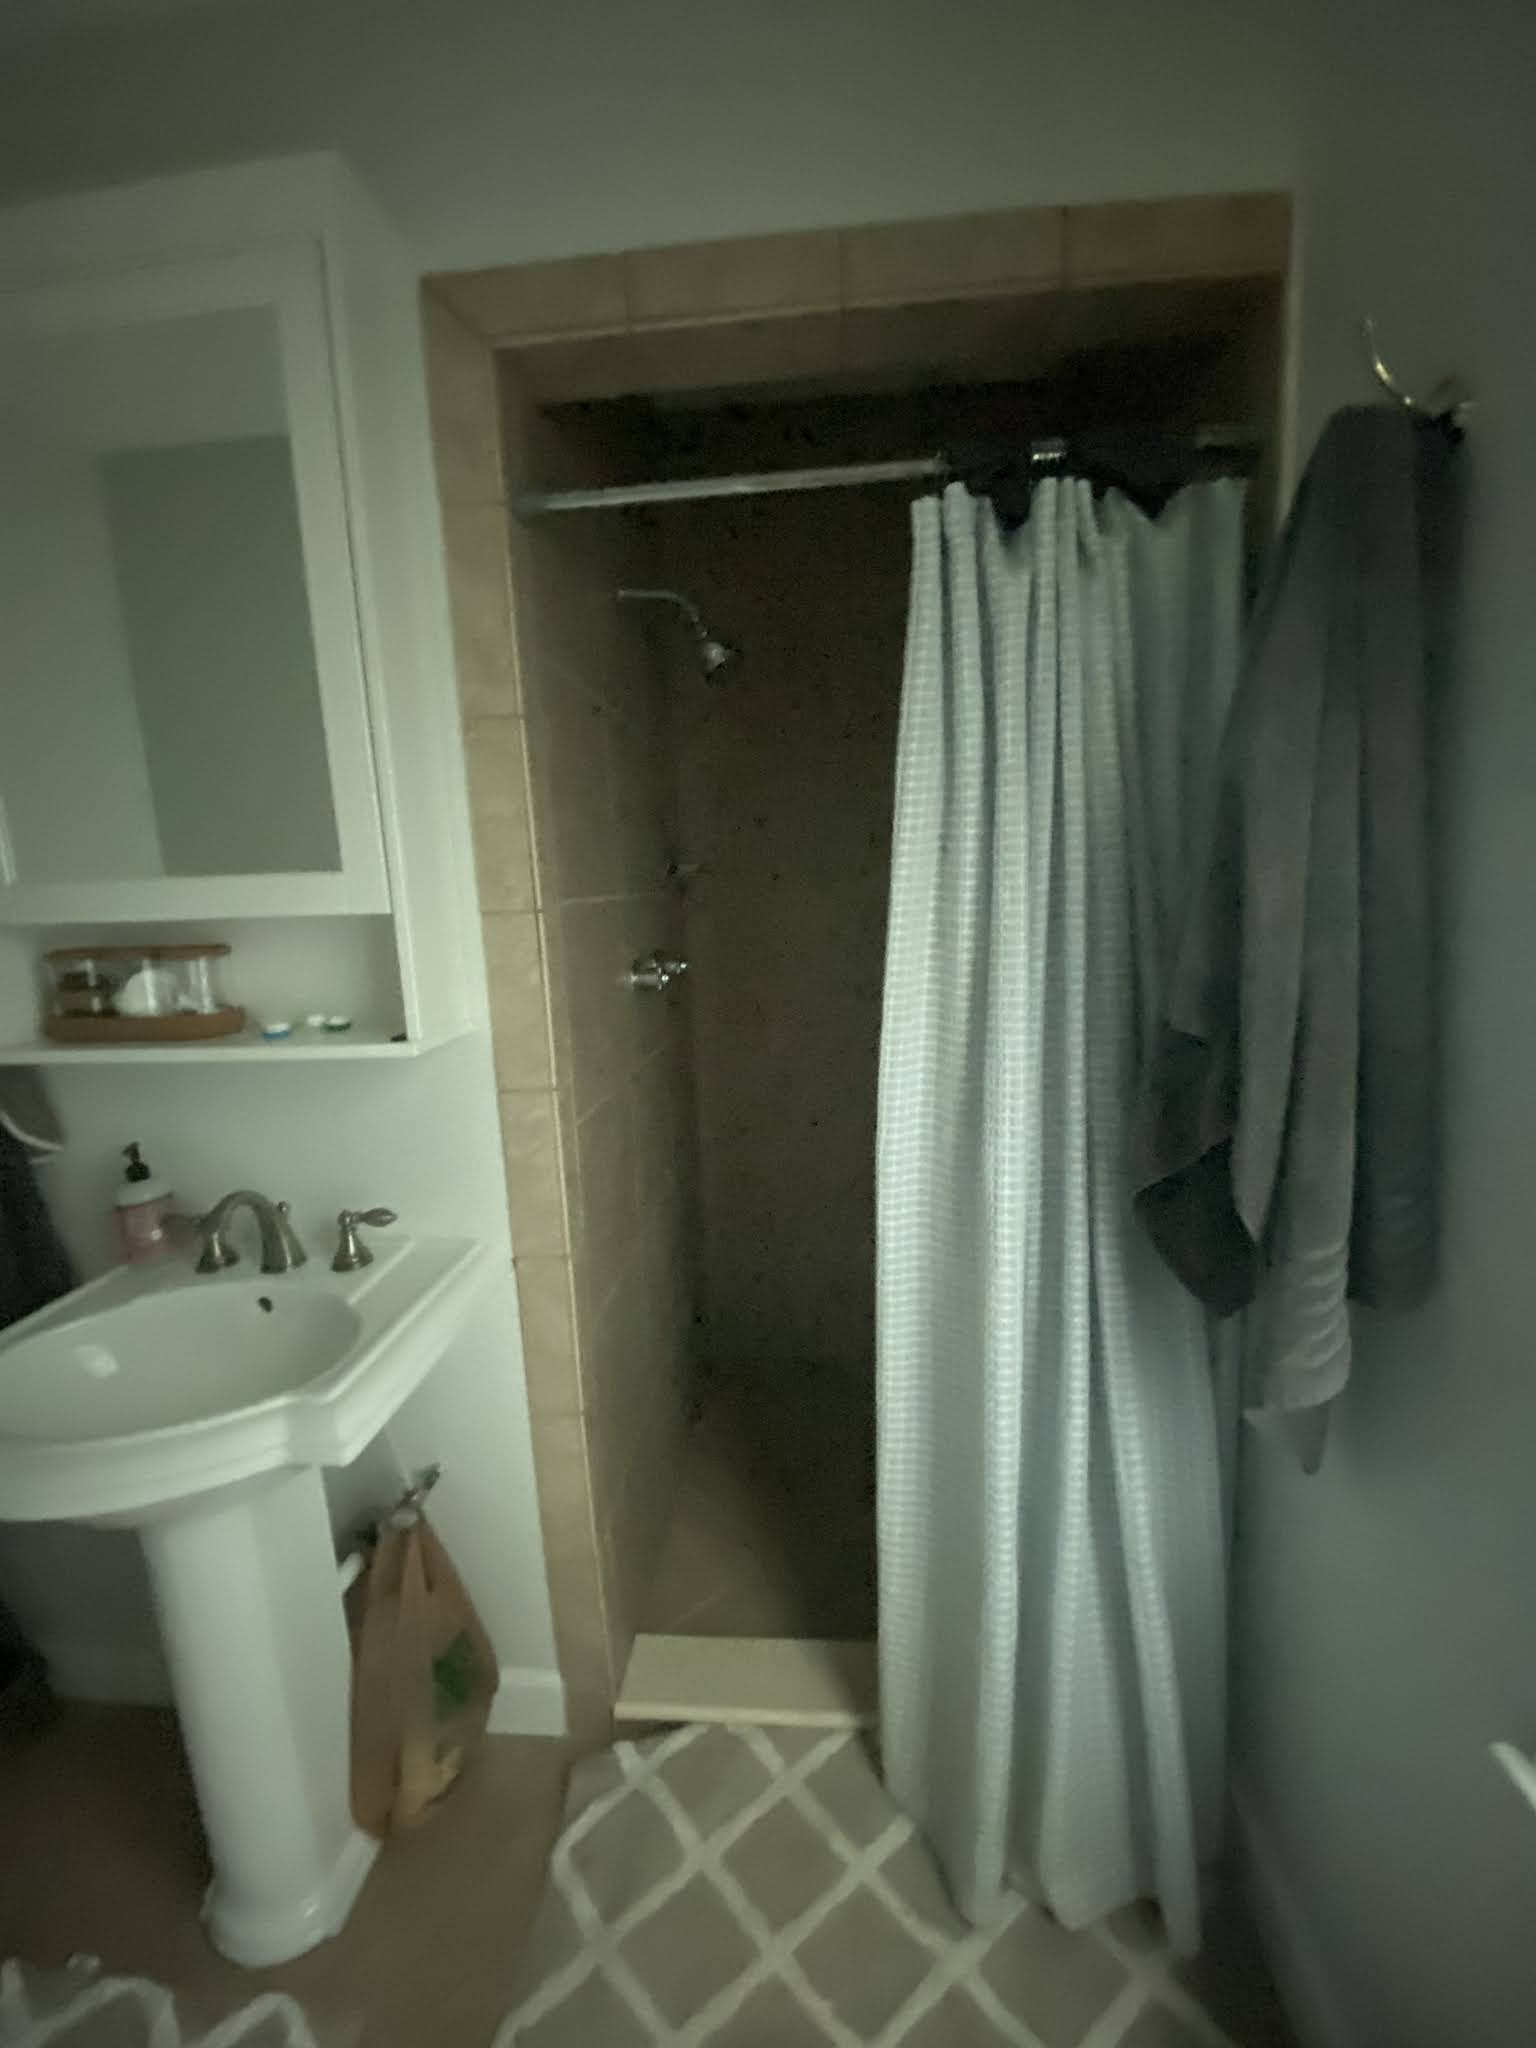 Owner's Bathroom Before and After Reveal